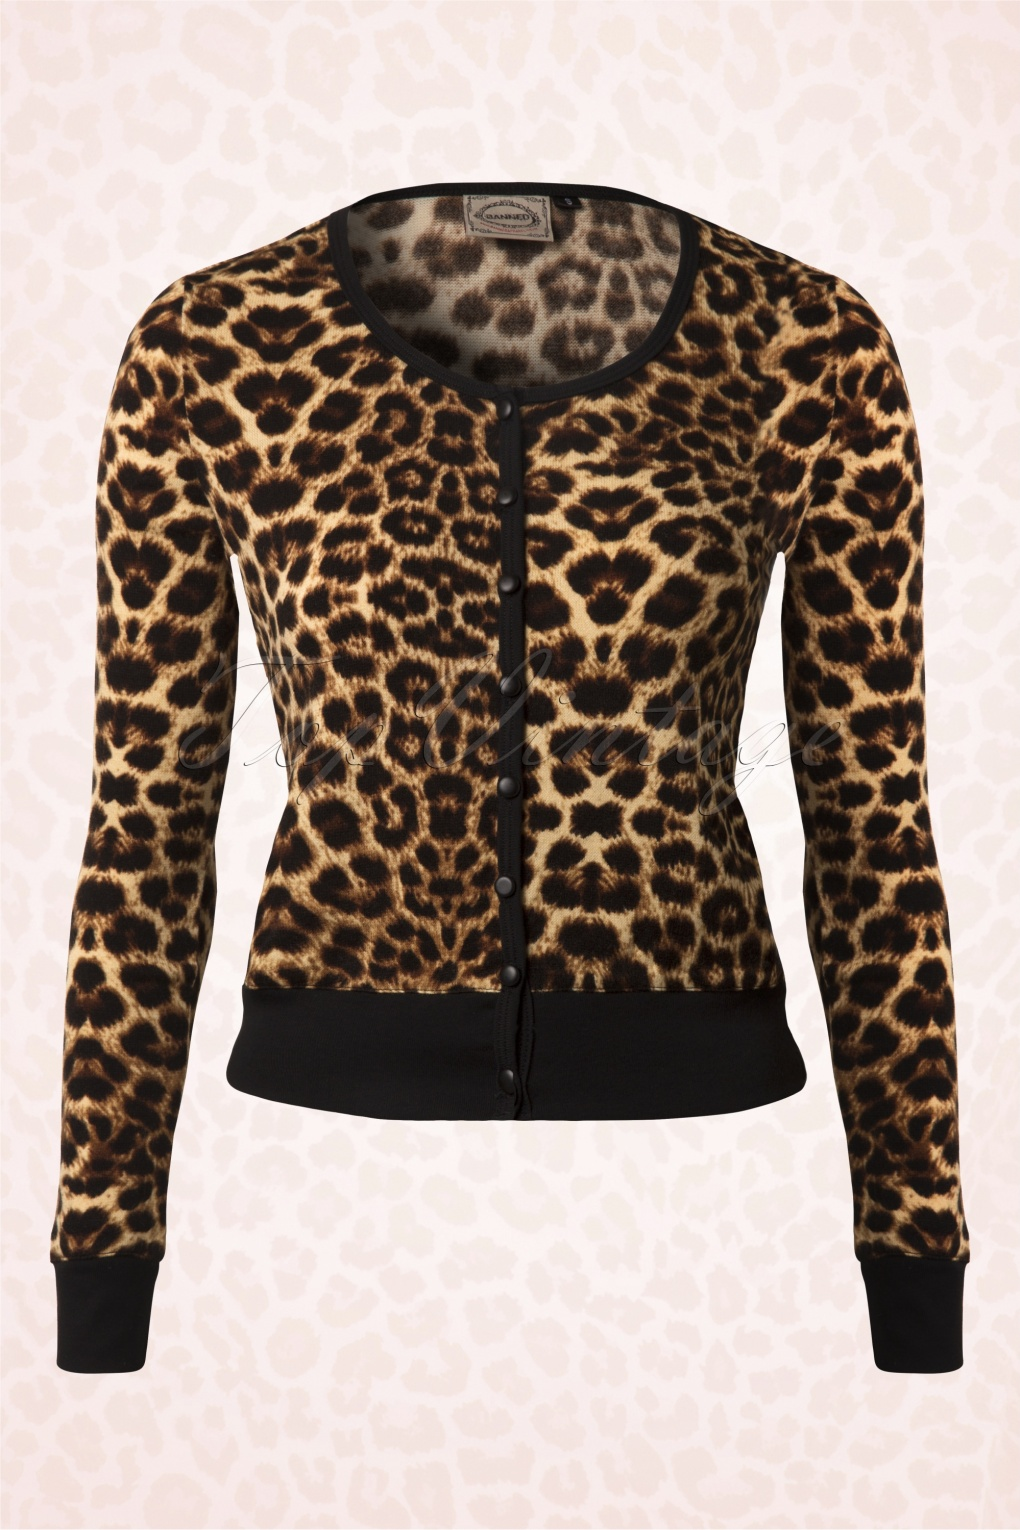 Trendy Print Makes Item Stand Out. MCCKLE Women's Long Sleeve Leopard Print Knitted Shop Best Sellers· Deals of the Day· Fast Shipping· Read Ratings & Reviews.